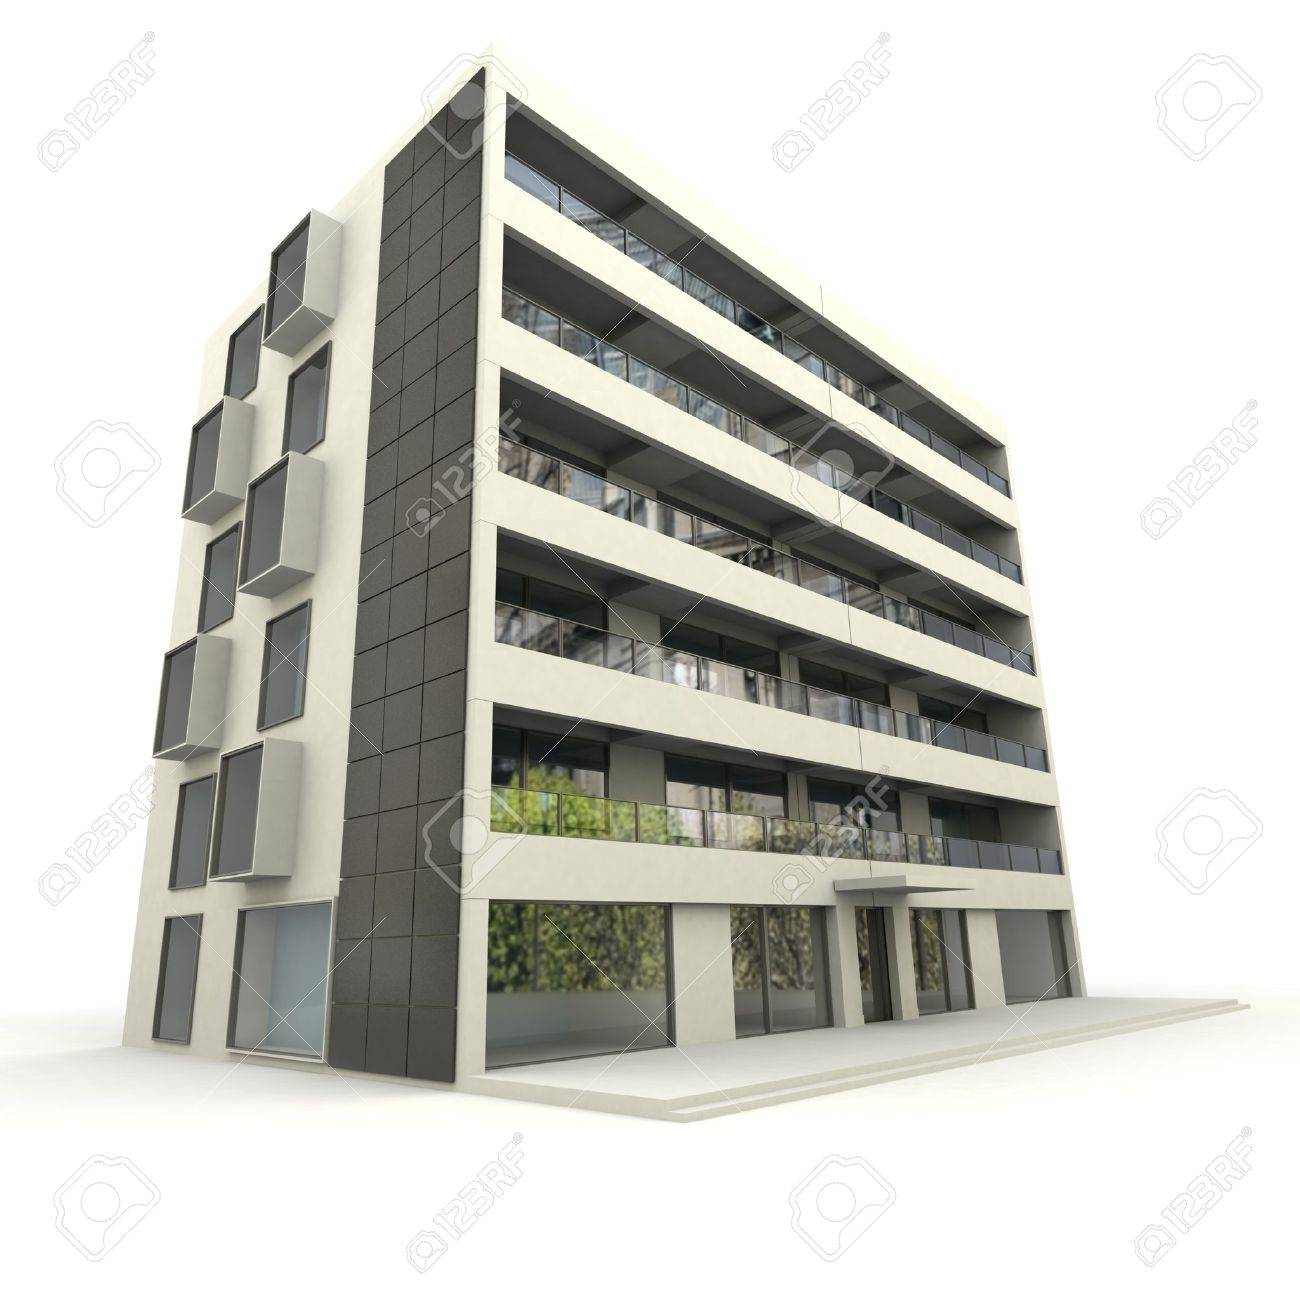 3D Rendering Of A Modern Apartment Building Stock Photo, Picture ...